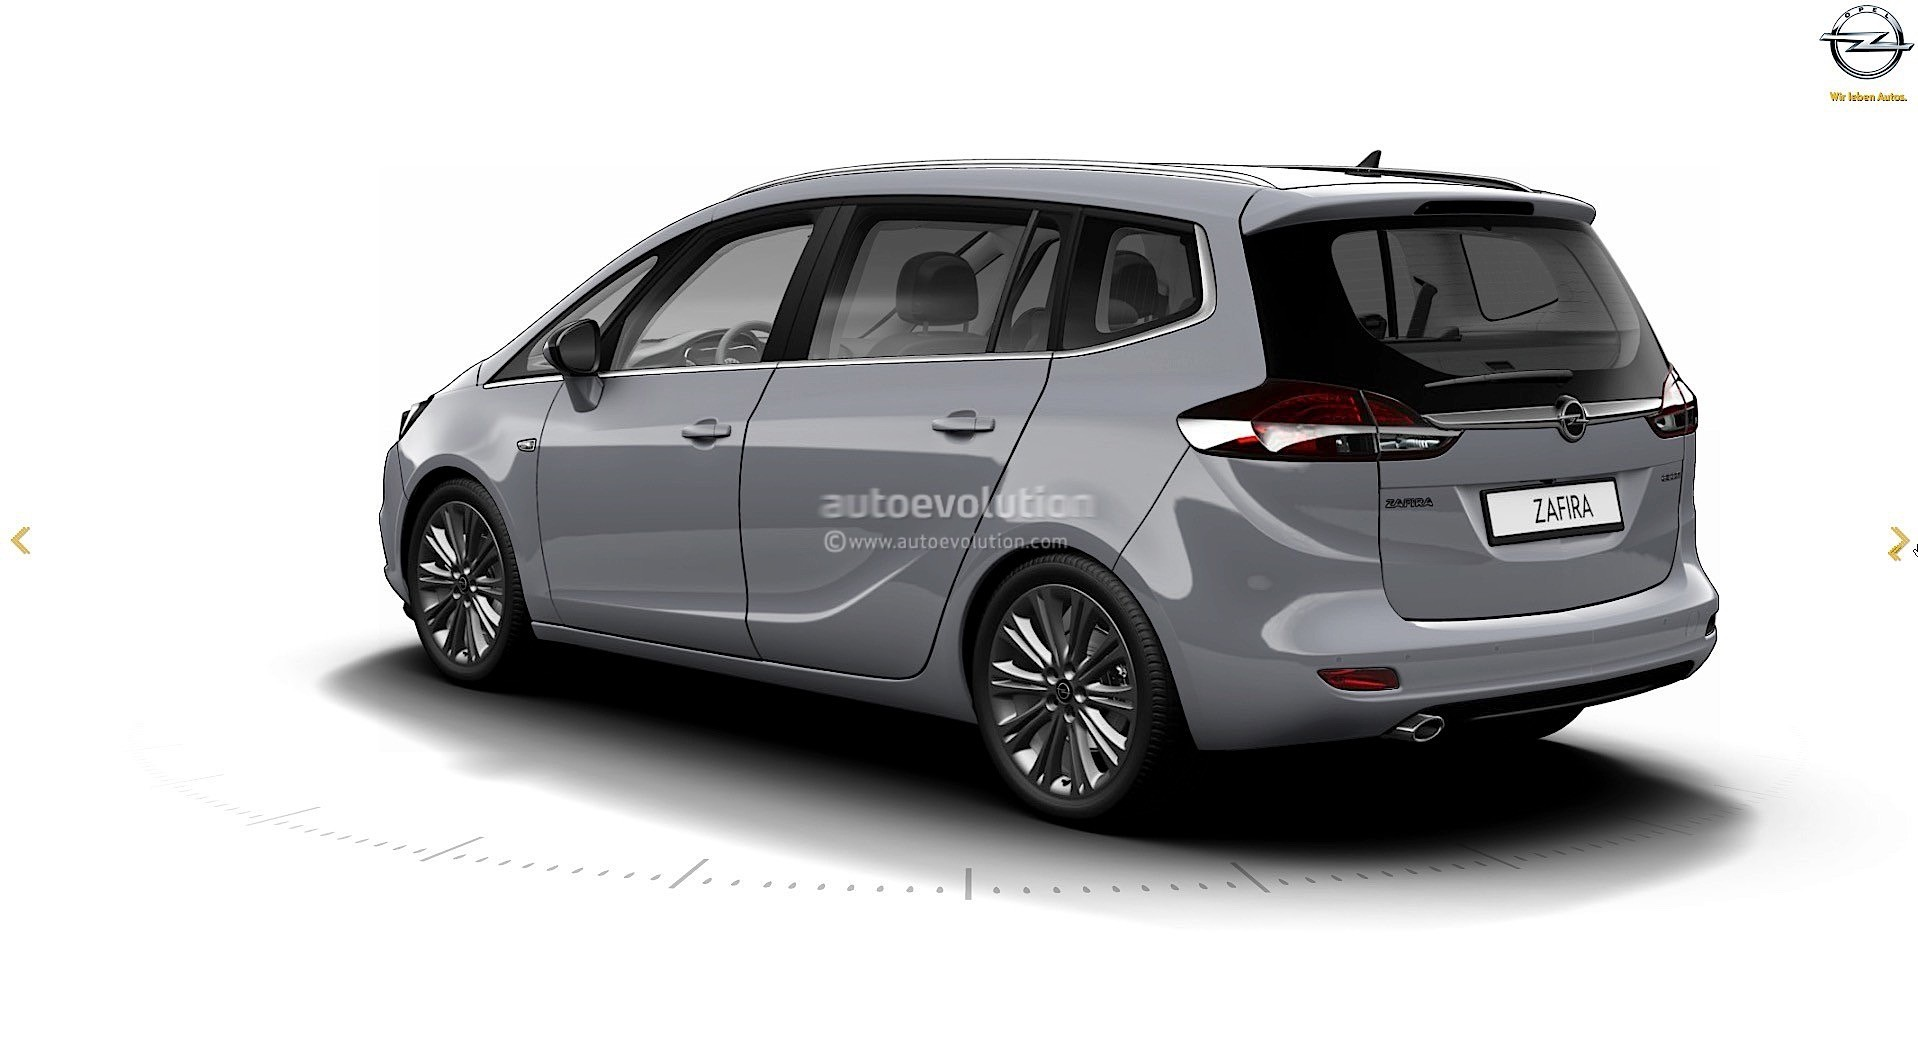 2018 Opel Zafira photo - 1